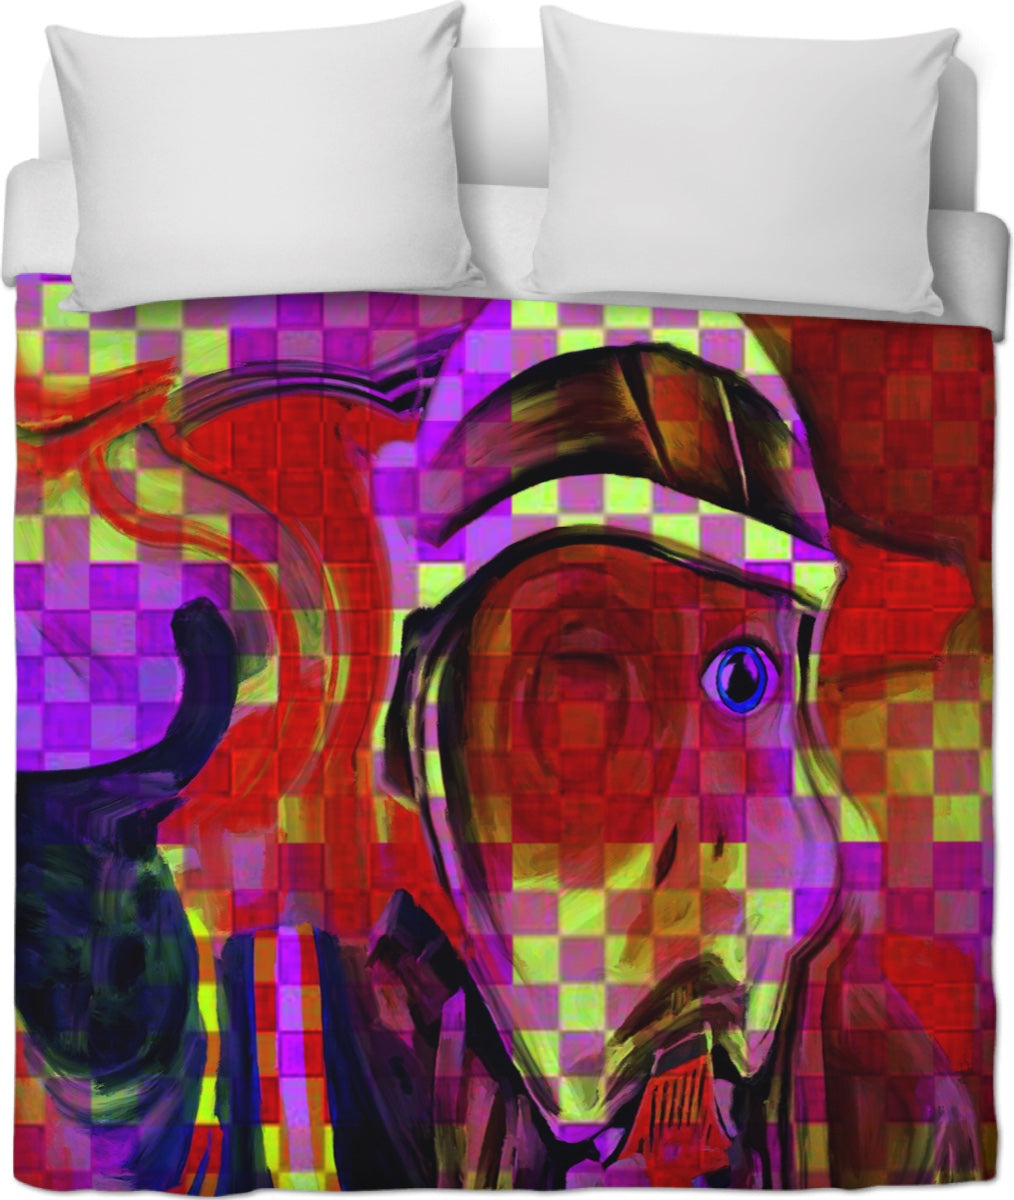 Duvet covers Fireman Collection Abstract45